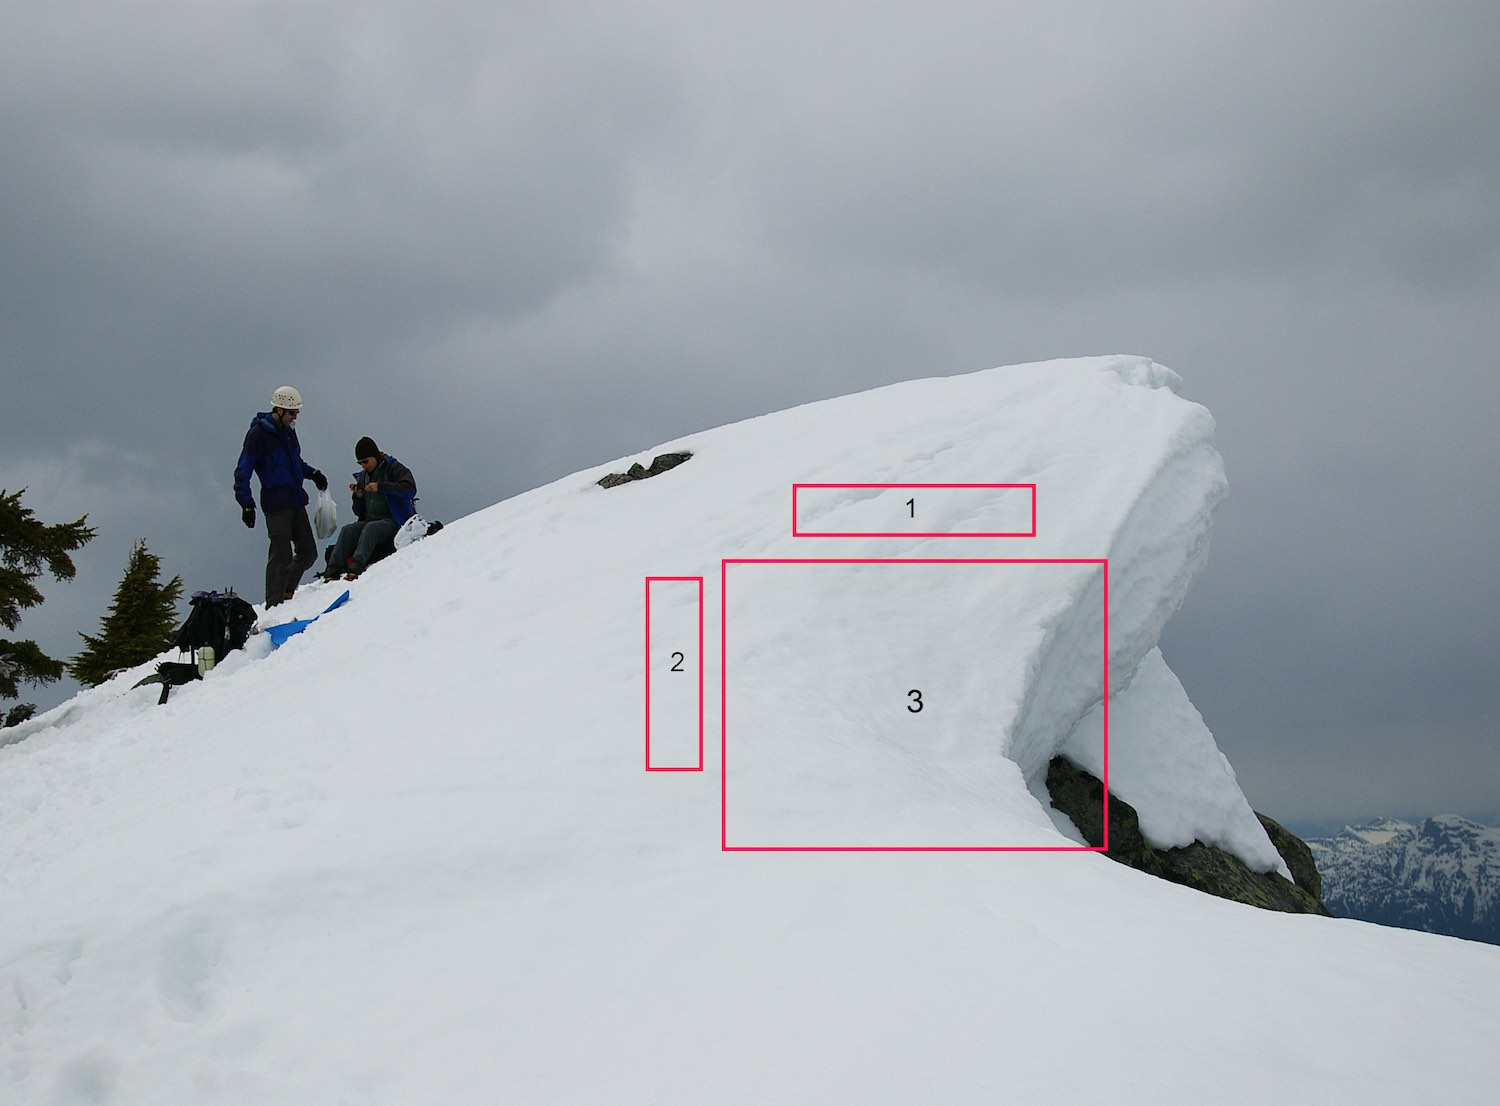 A cornice of snow about to fall. Cracks in the snow are visible in area (1). Area (3) fell soon after this picture was taken, leaving area (2) as the new edge.  Photo by  Tim Gage  (originally posted to Flickr as  Hidden dangers ) [ CC BY-SA 2.0 ], via Wikimedia Commons